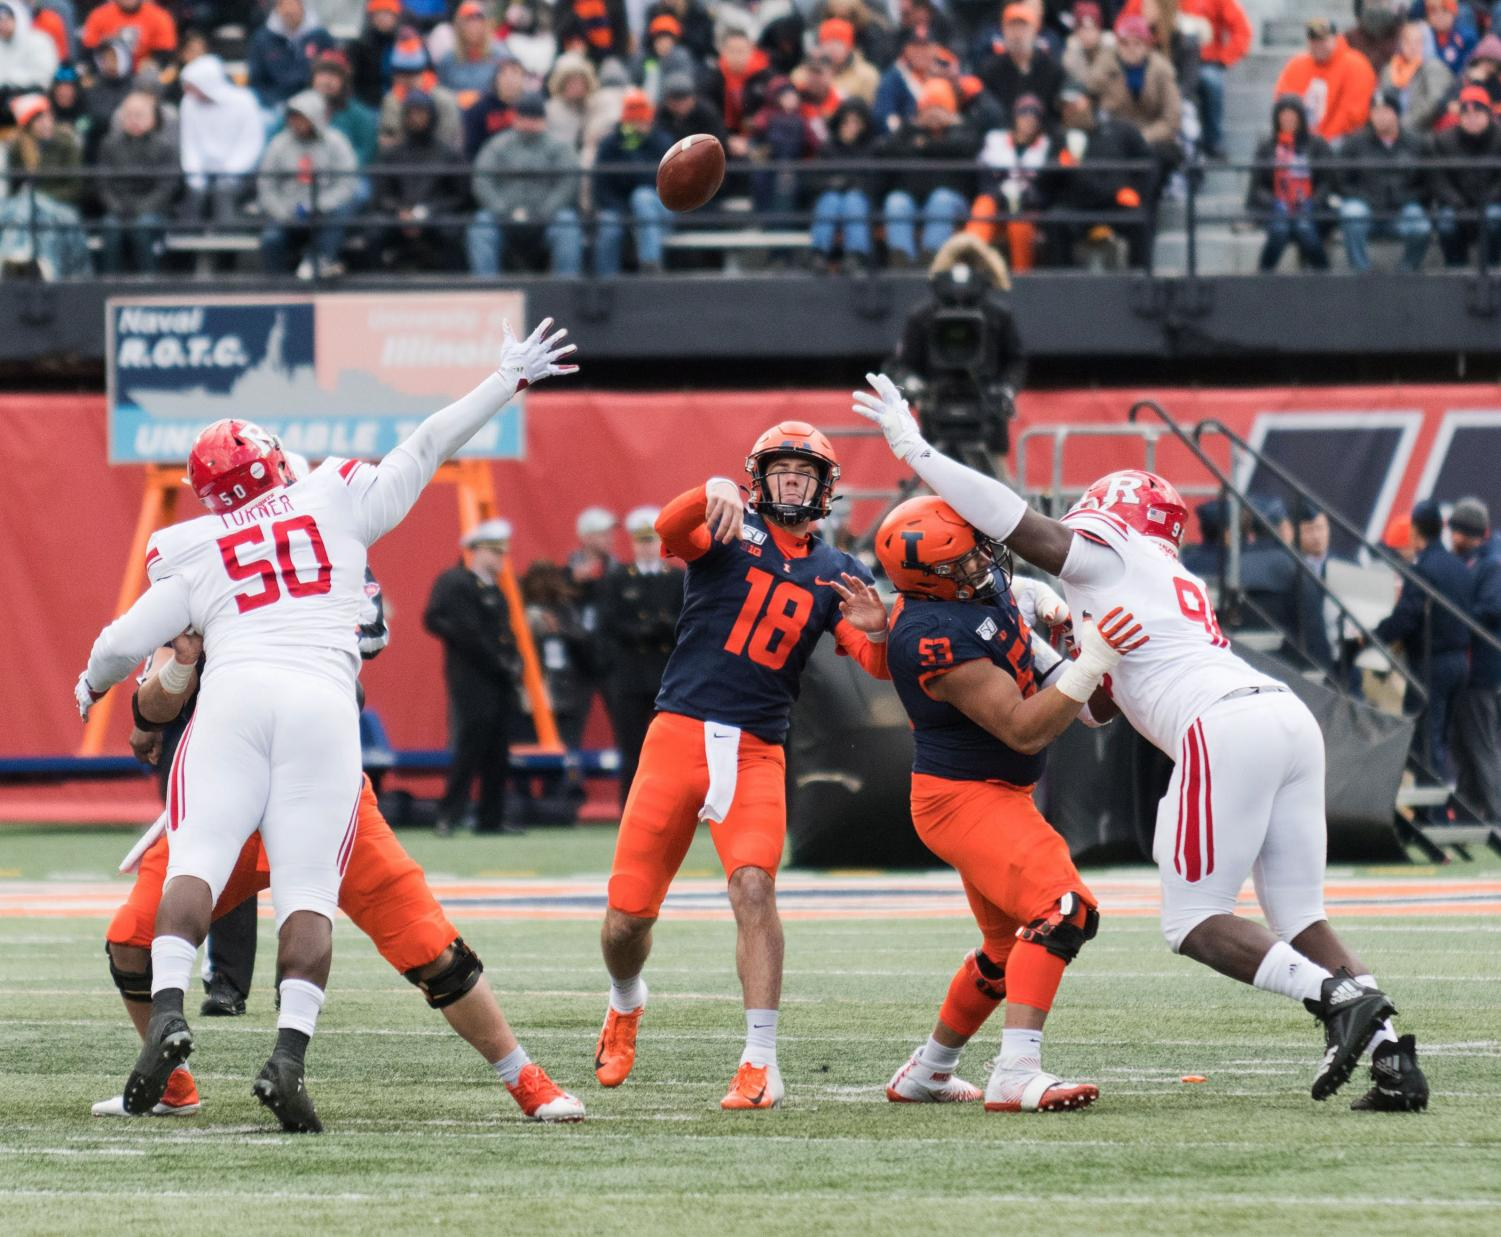 llinois quarterback Brandon Peters launches a pass during the game against Rutgers. The Illini were tied 10-10 at halftime, but bested the Scarlet Knights 38-10. Jonathan Bonaguro The Daily Illini.